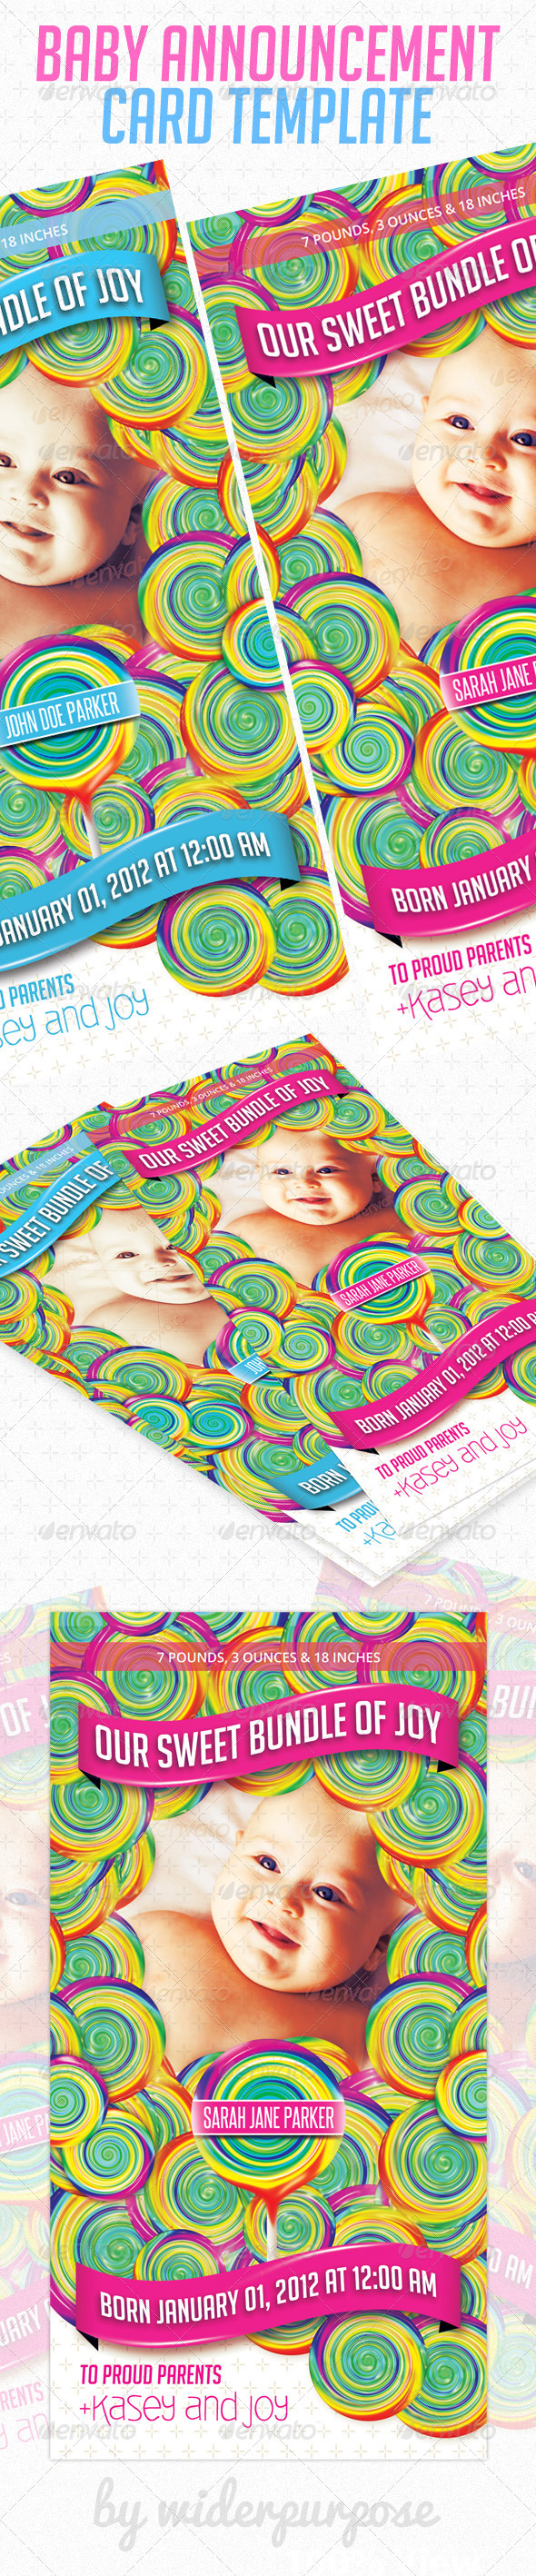 Baby Announcement Card PSD Template - Cards & Invites Print Templates